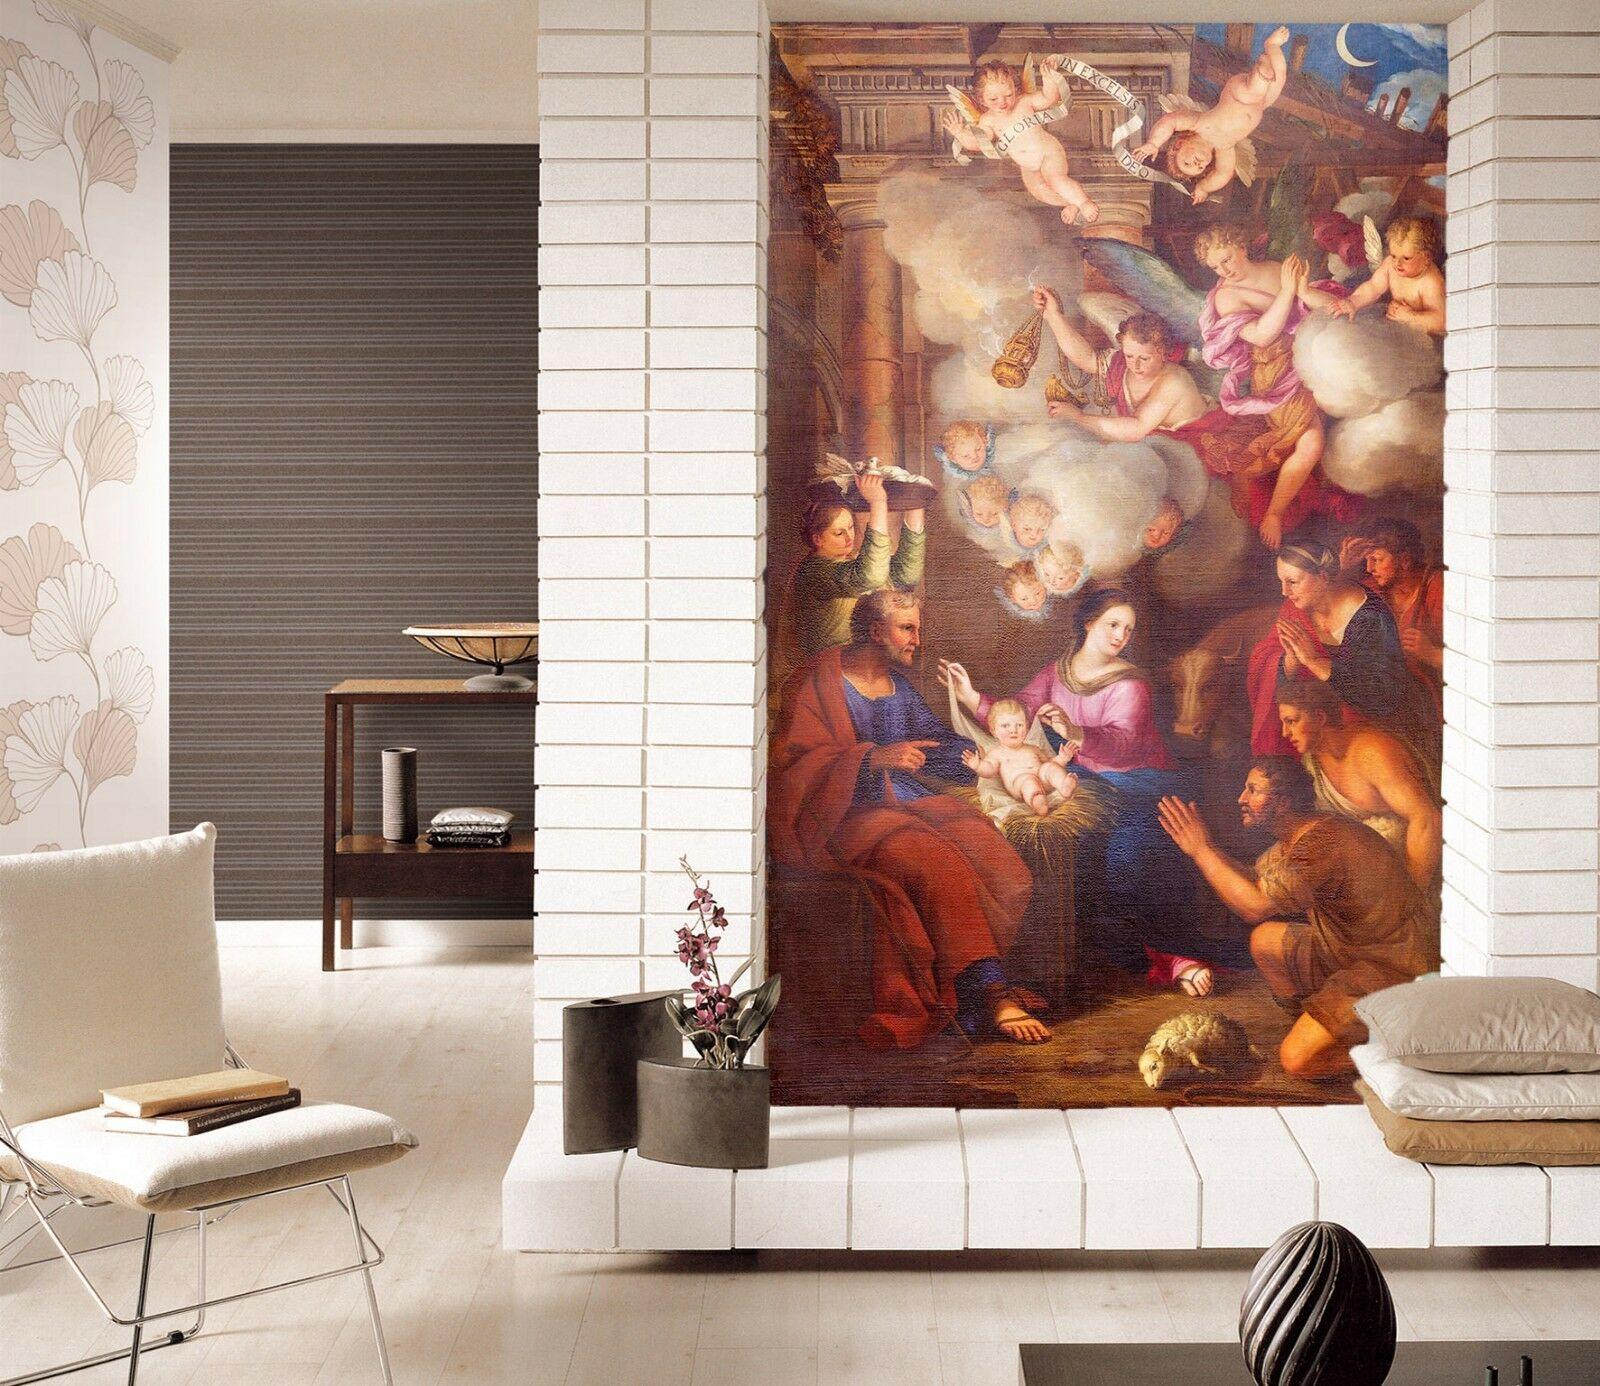 3D Human Oil Painting 4 Wall Paper Wall Print Decal Wall Deco Indoor wall Mural